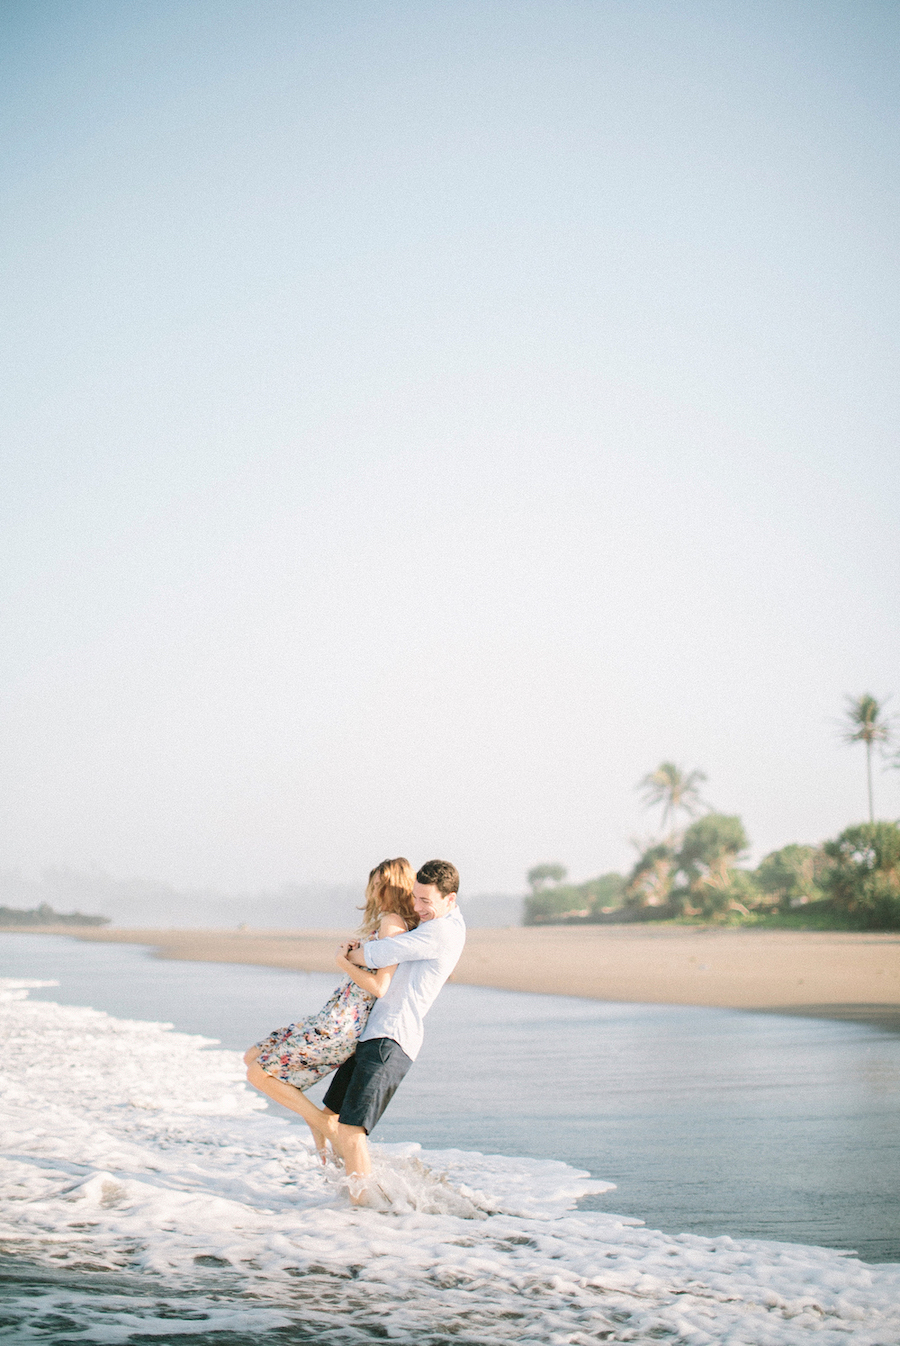 saya-photography-pre-wedding-engagement-bali-canggu-67.jpg